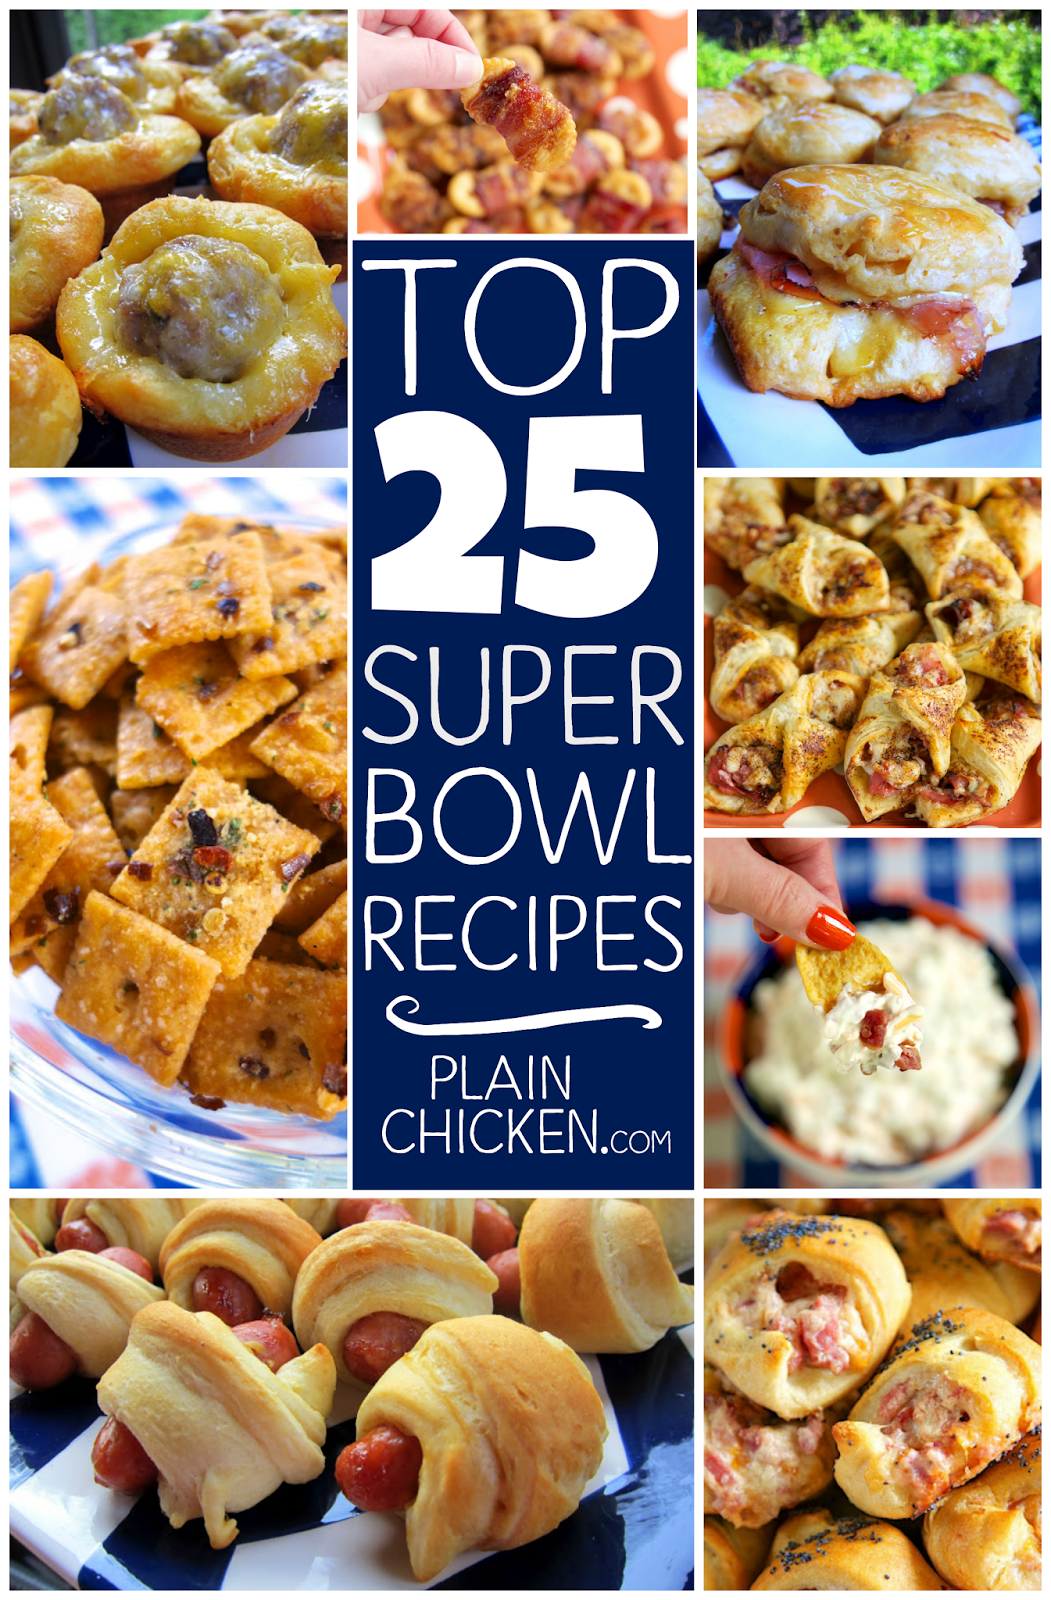 Top 25 Super Bowl Recipes